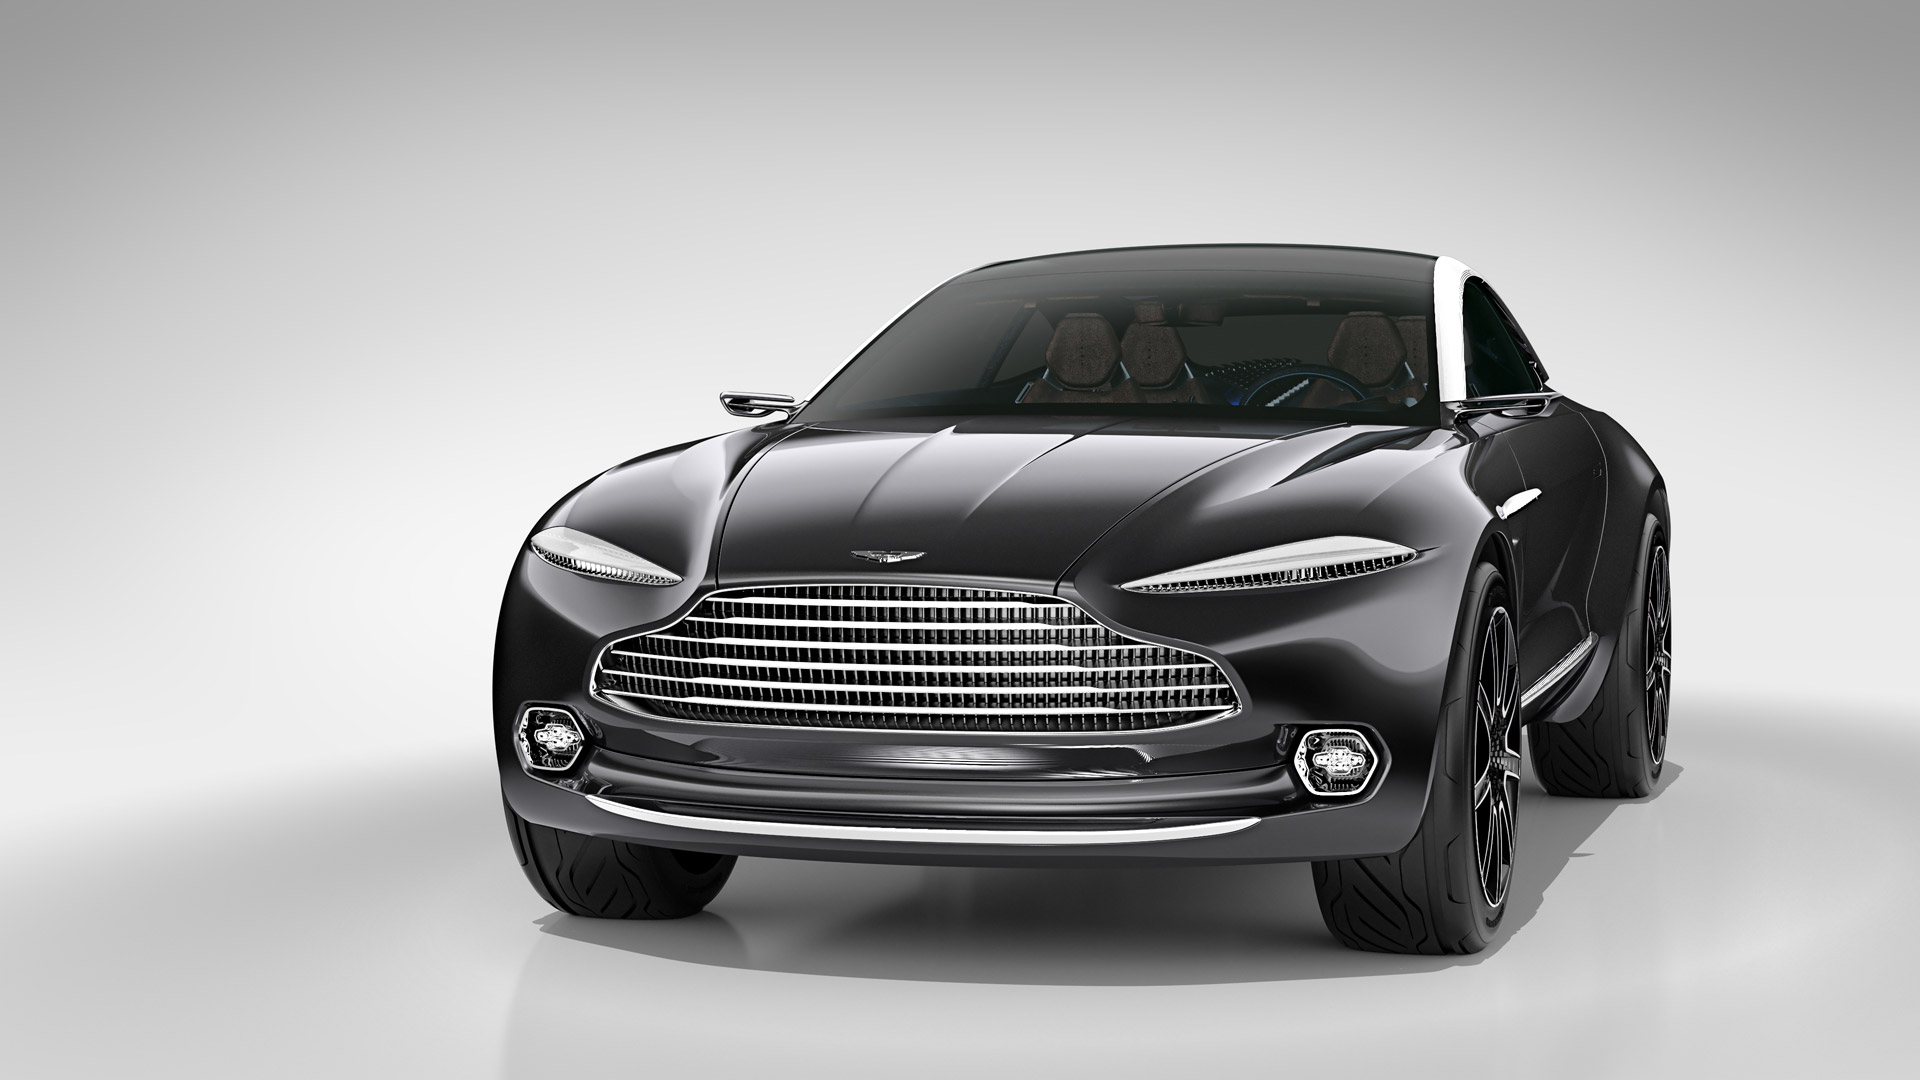 Aston Martin Secures Funding For SUV, Other Luxury Vehicles